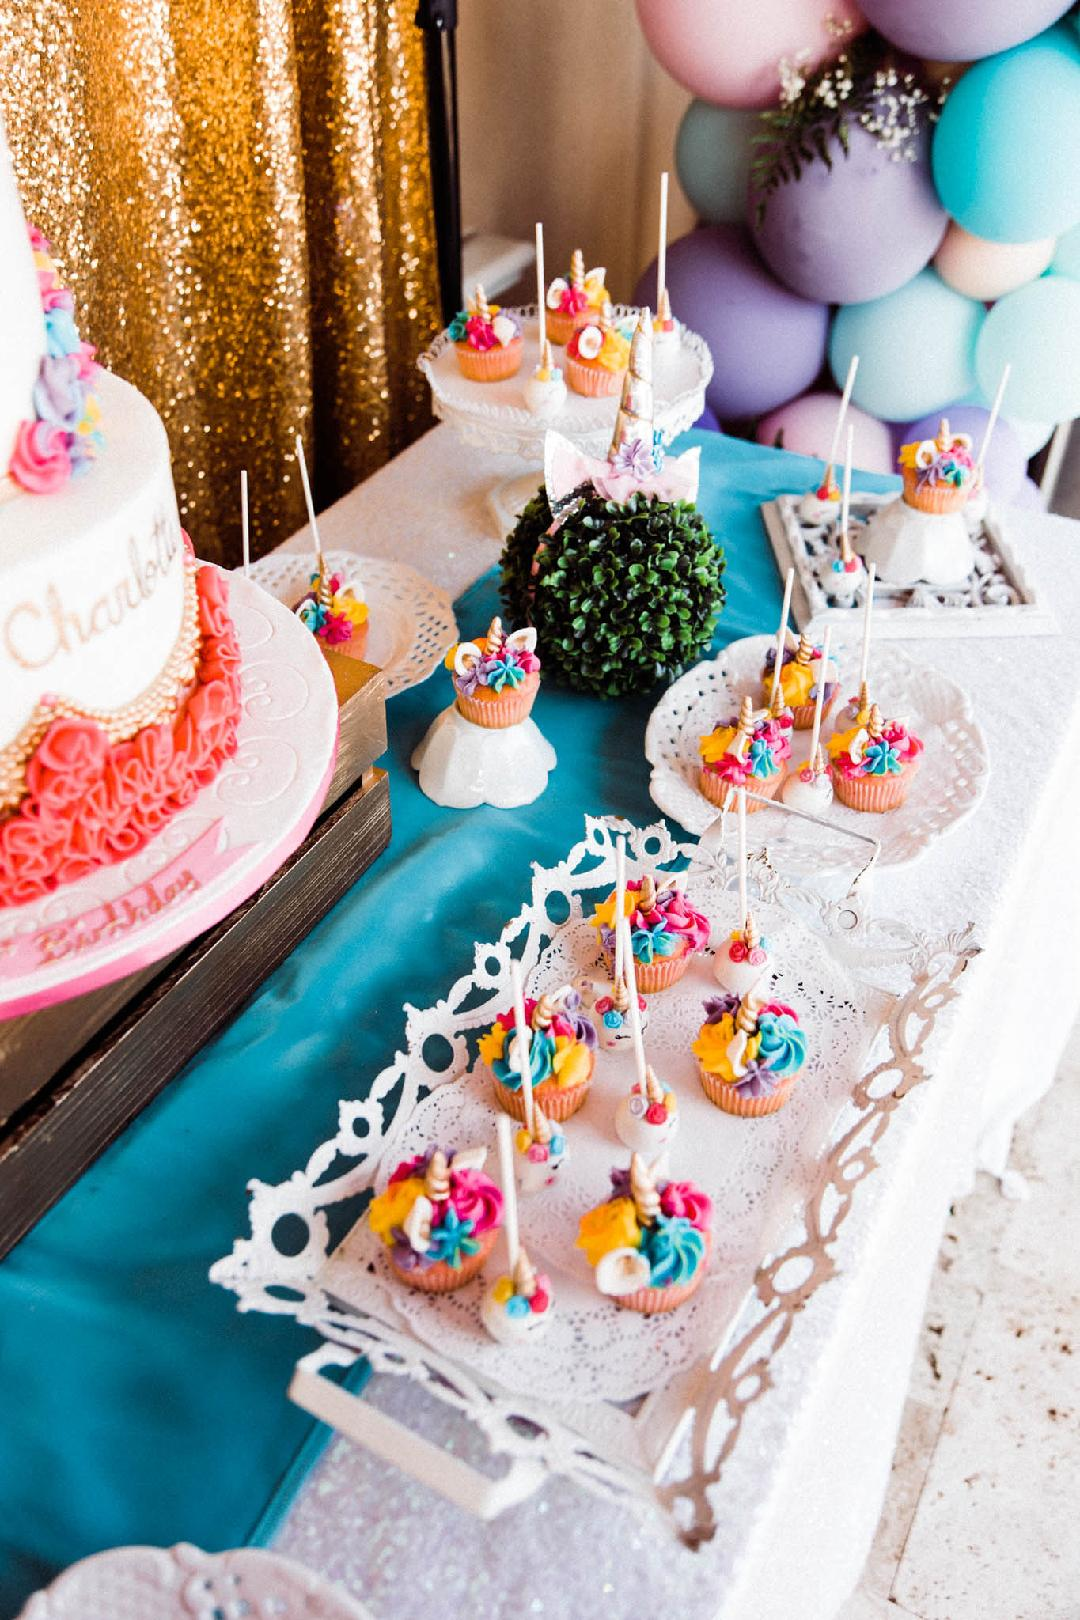 houston kids birthday party planner rainbows and wishes.jpg